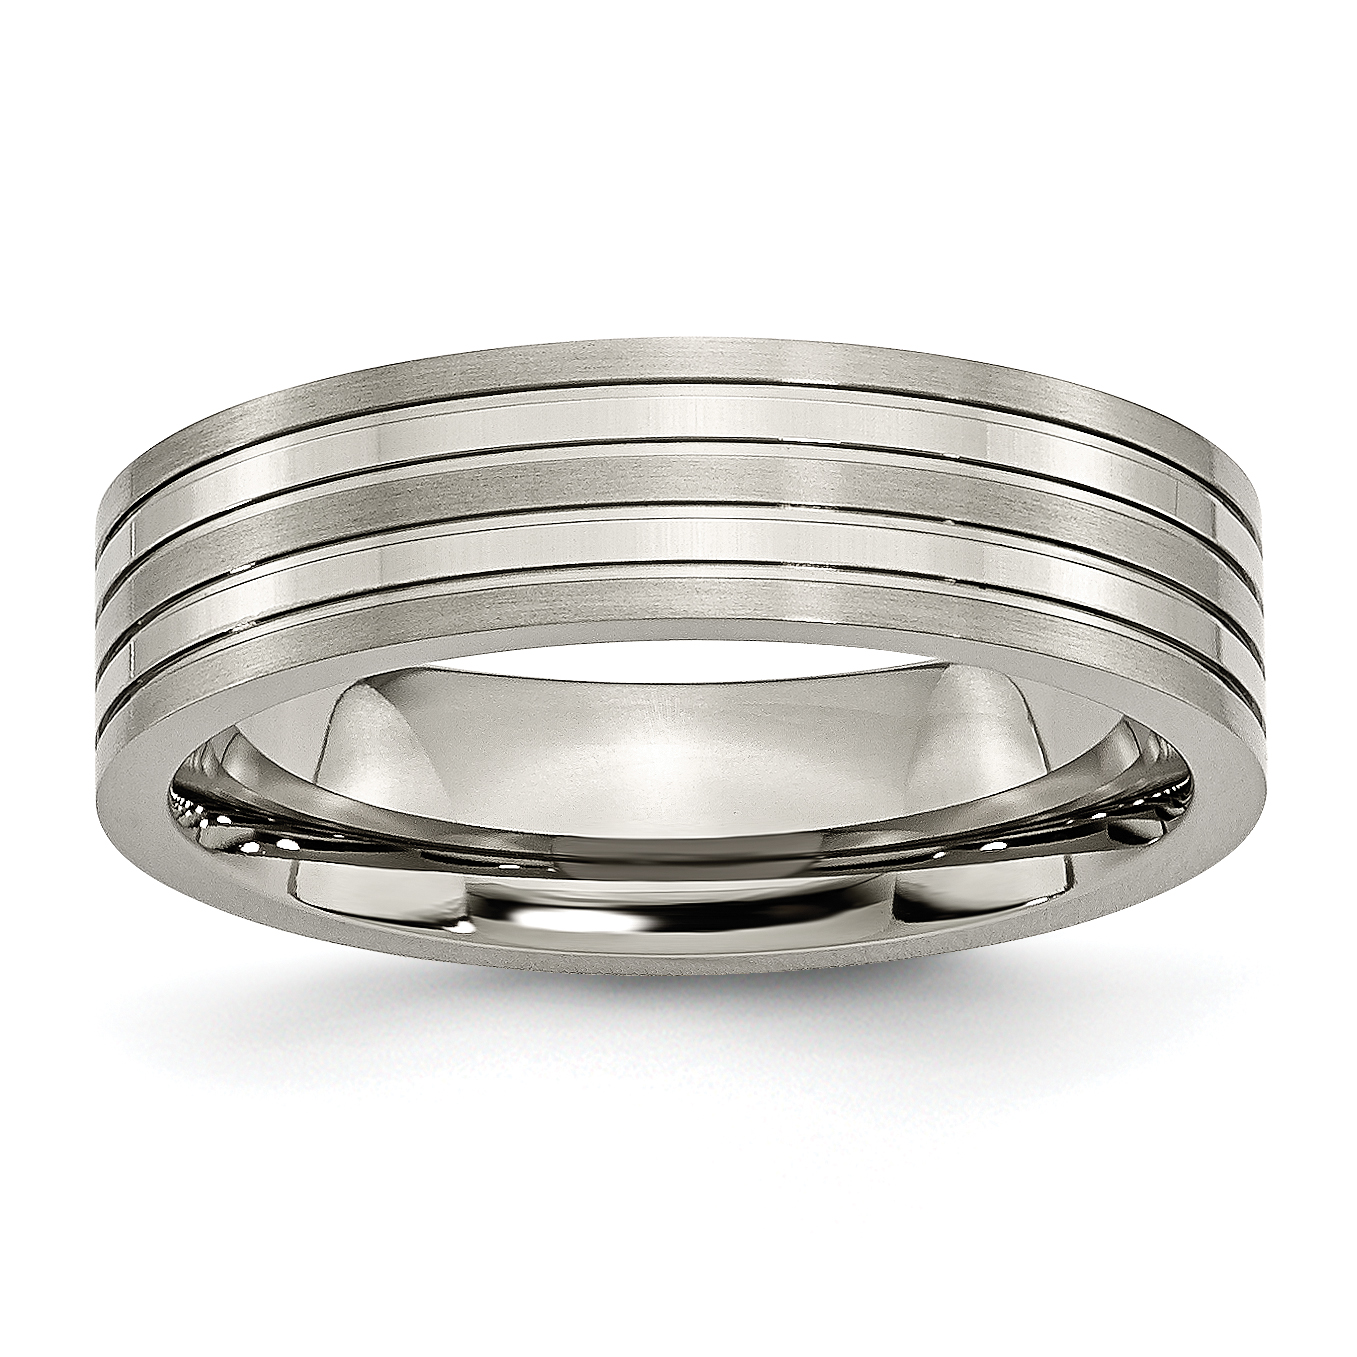 Titanium Grooved 6mm Brushed Wedding Ring Band Size 12.00 Fashion Jewelry Gifts For Women For Her - image 6 of 6